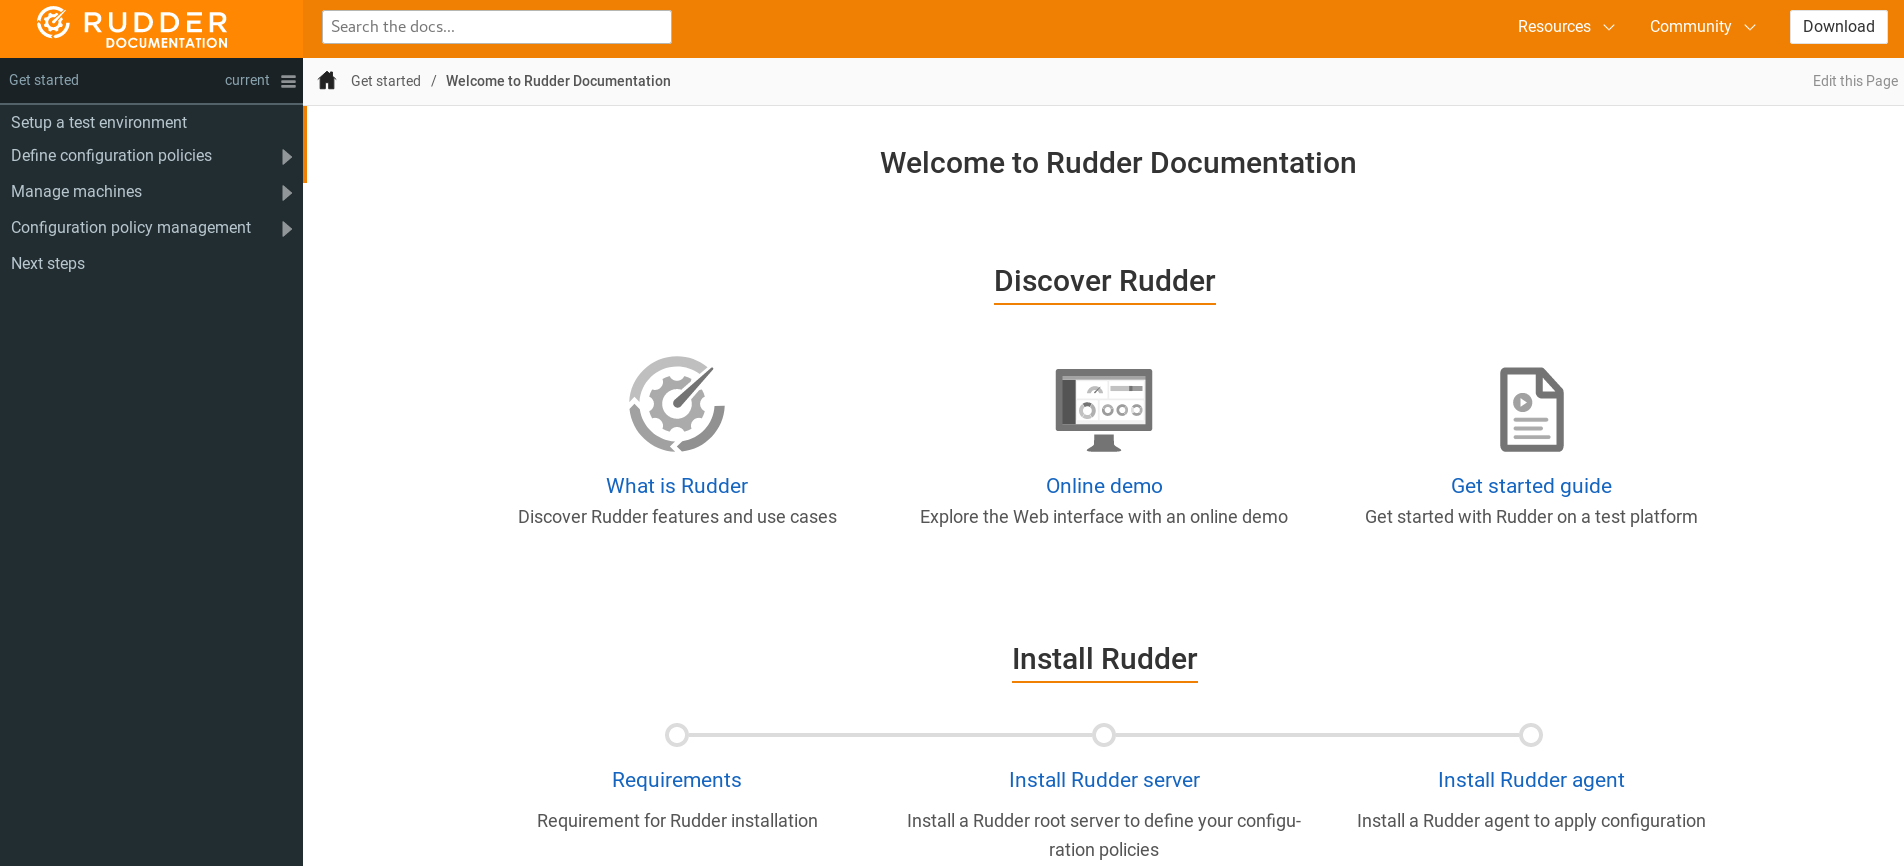 RUDDER 5 — interface de la nouvelle documentation docs.rudder.io